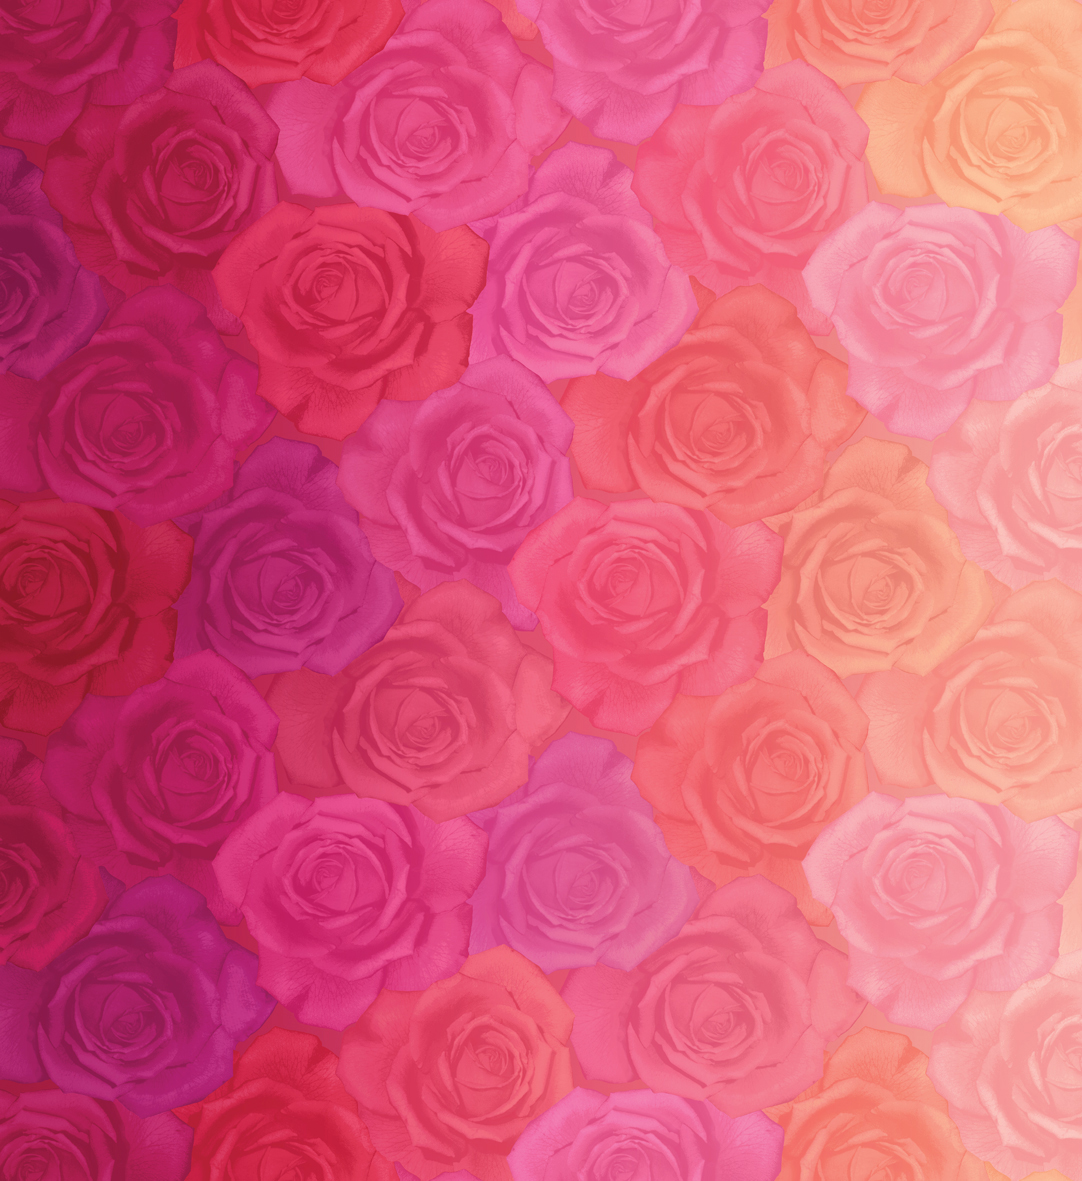 33364 11D Gradients Reds Pinks for Moda Fabrics. 100% cotton 43 wide